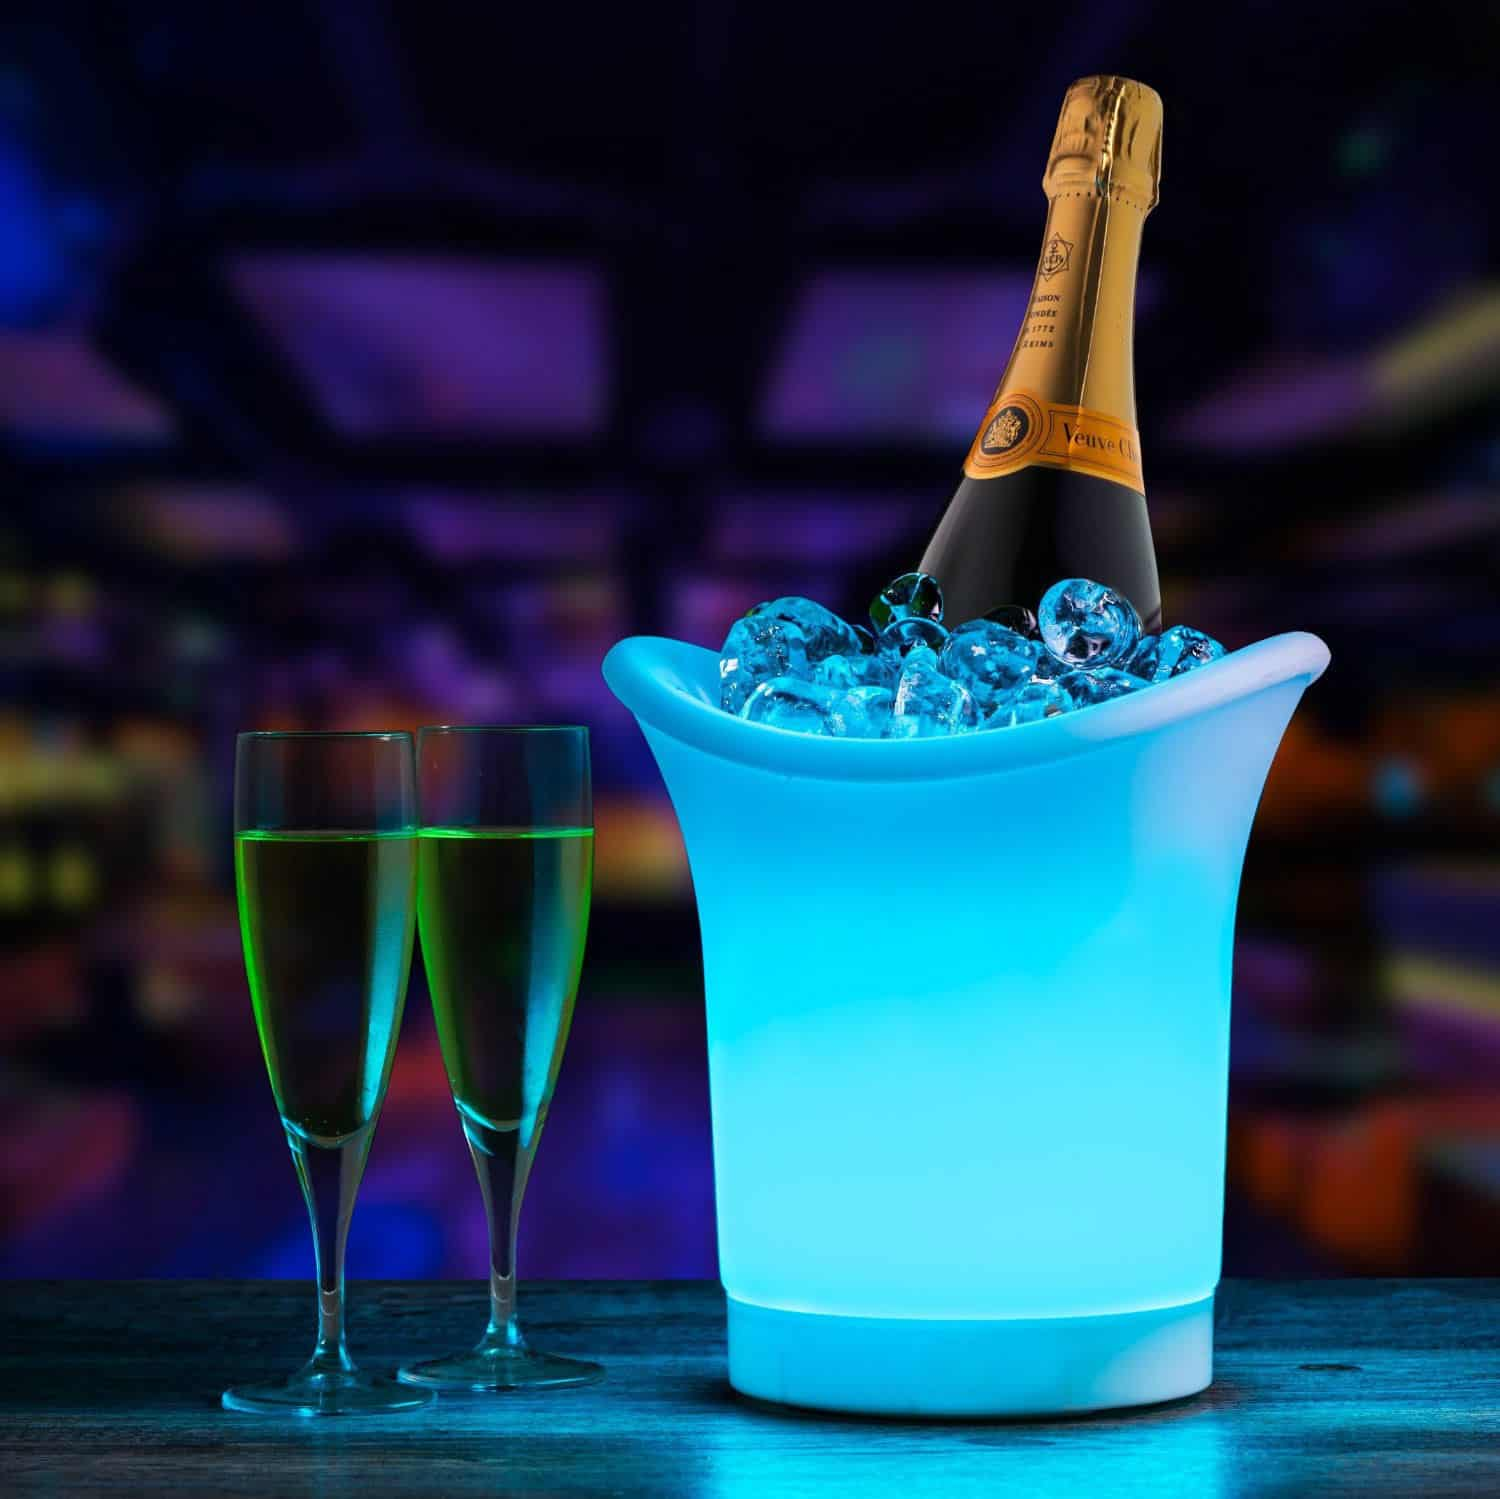 chair covers for hire parties teal bean bag led ice bucket | hertfordshire events weddings, dj, audio & pa hire, lighting, photobooth, stage